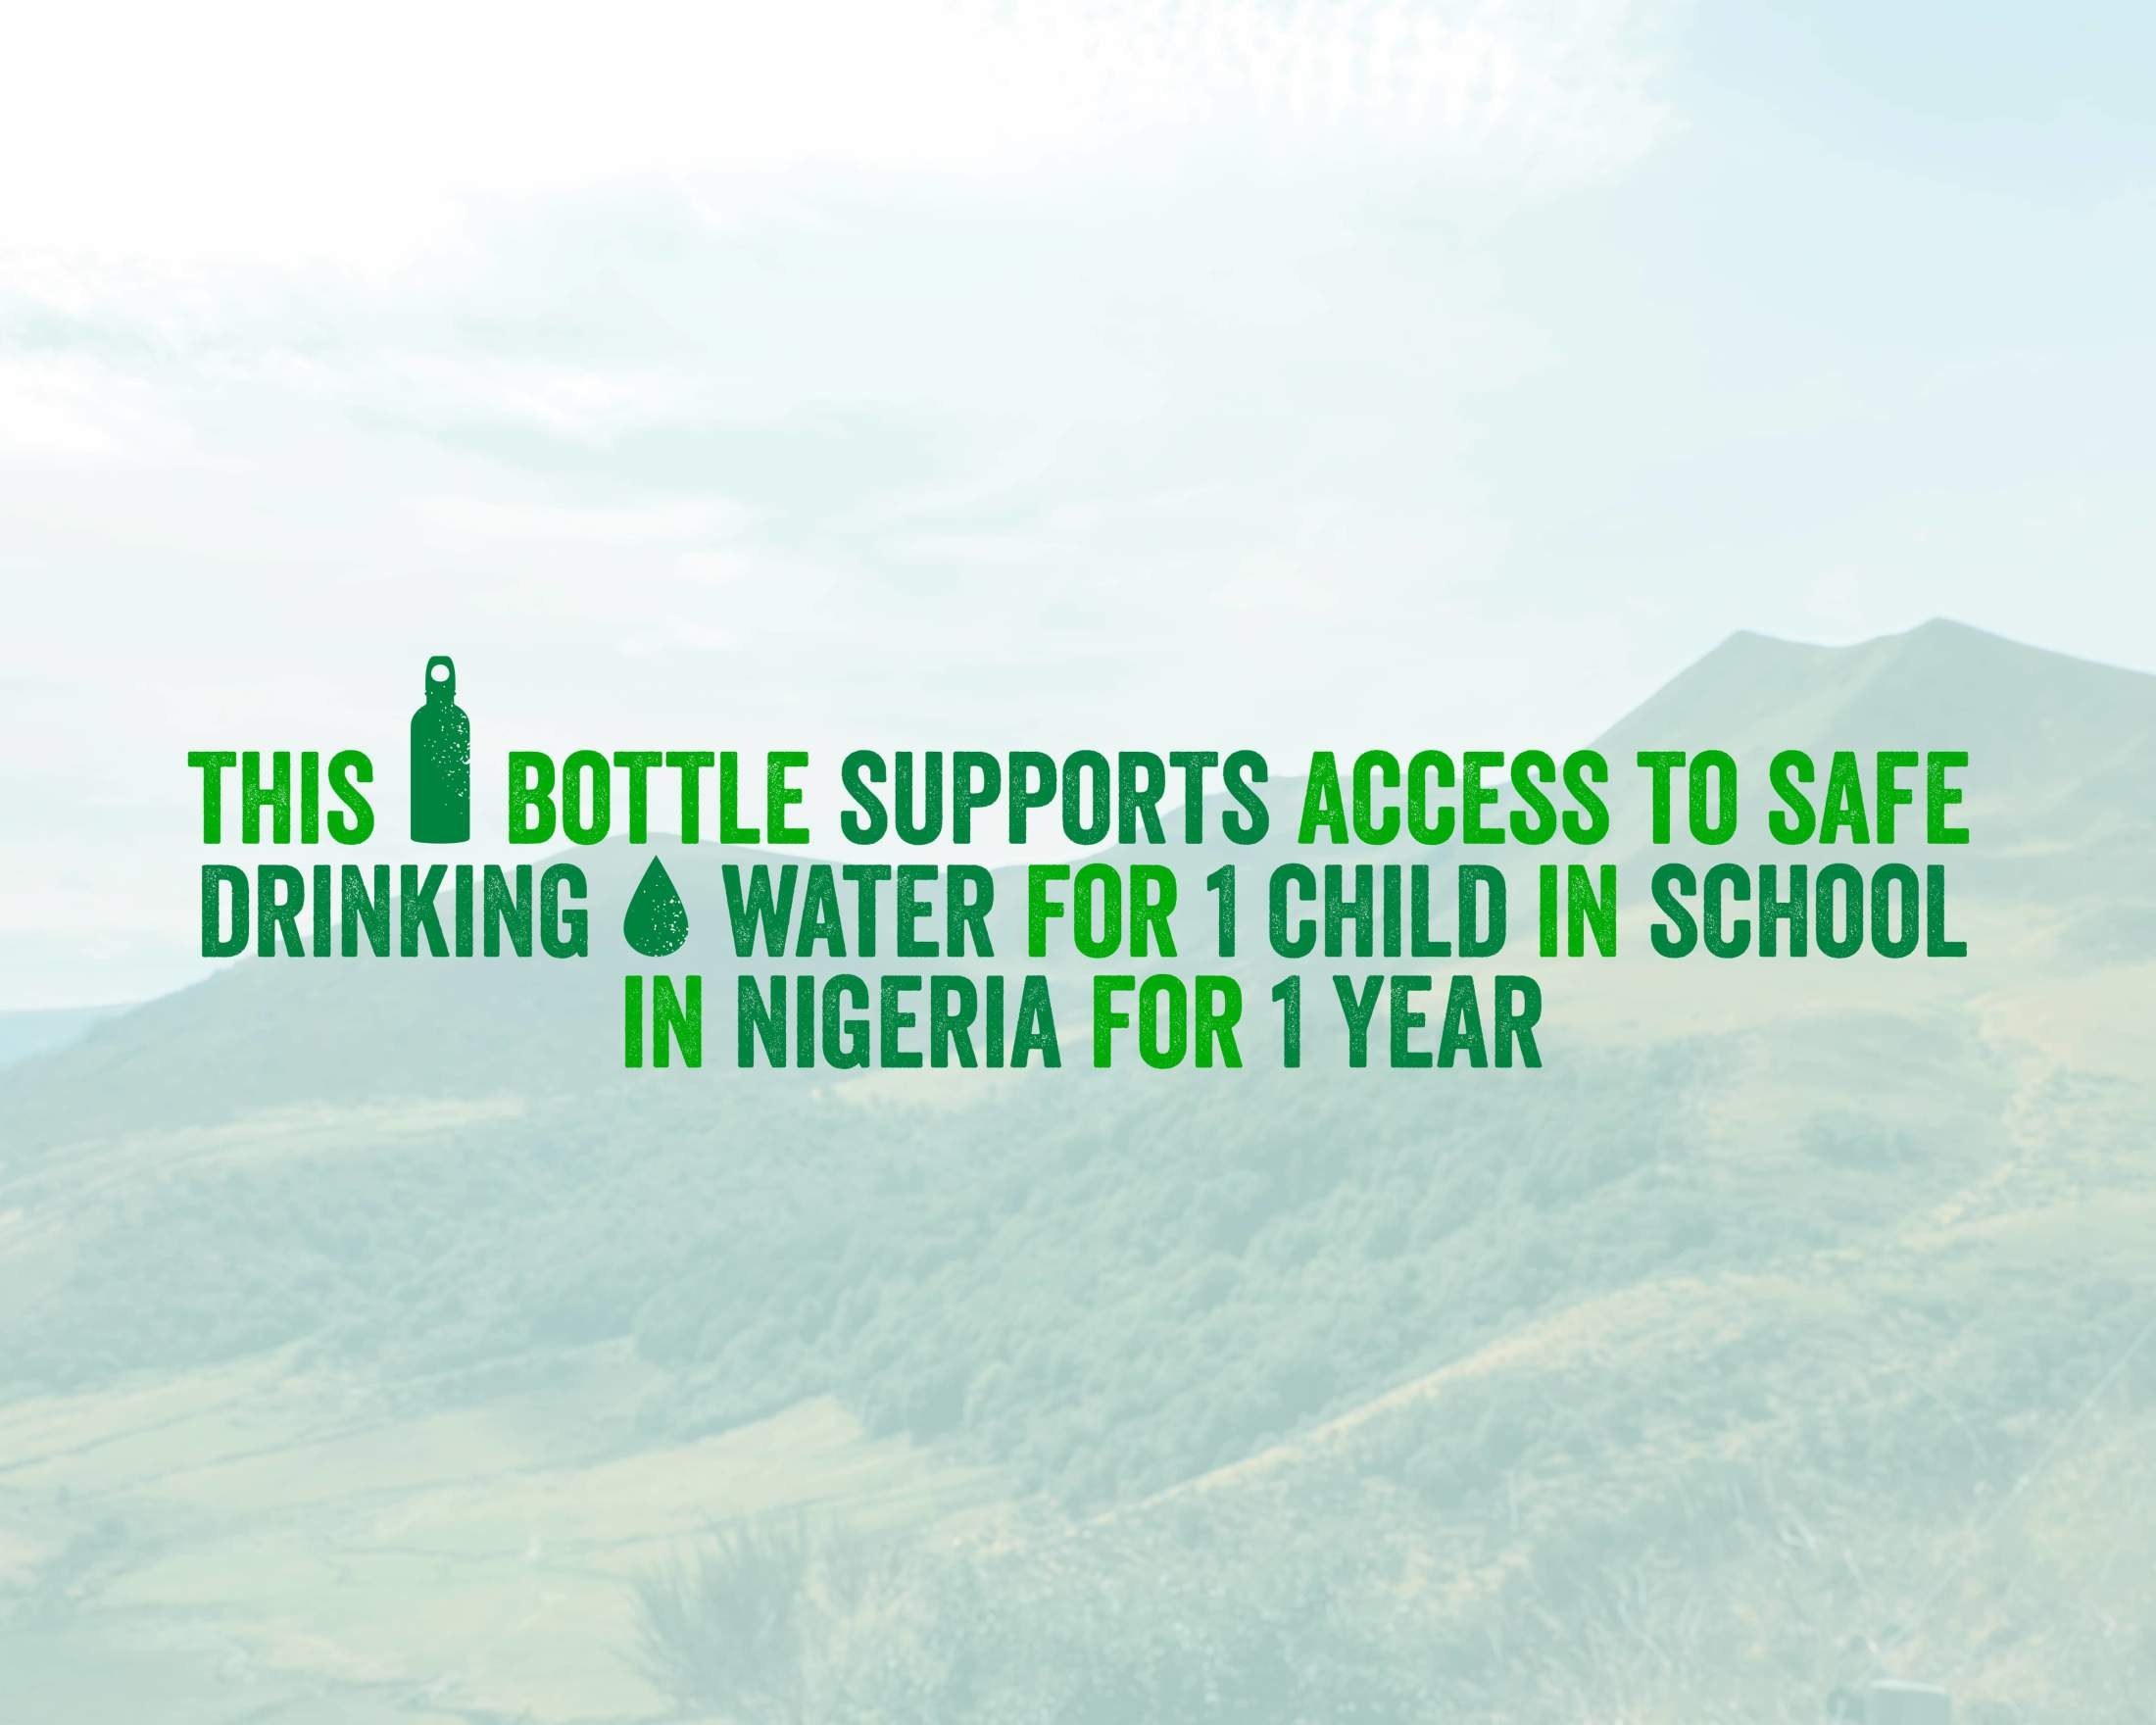 This bottle supports access to safe drinking water for 1 child in school in Nigeria for 1 year.